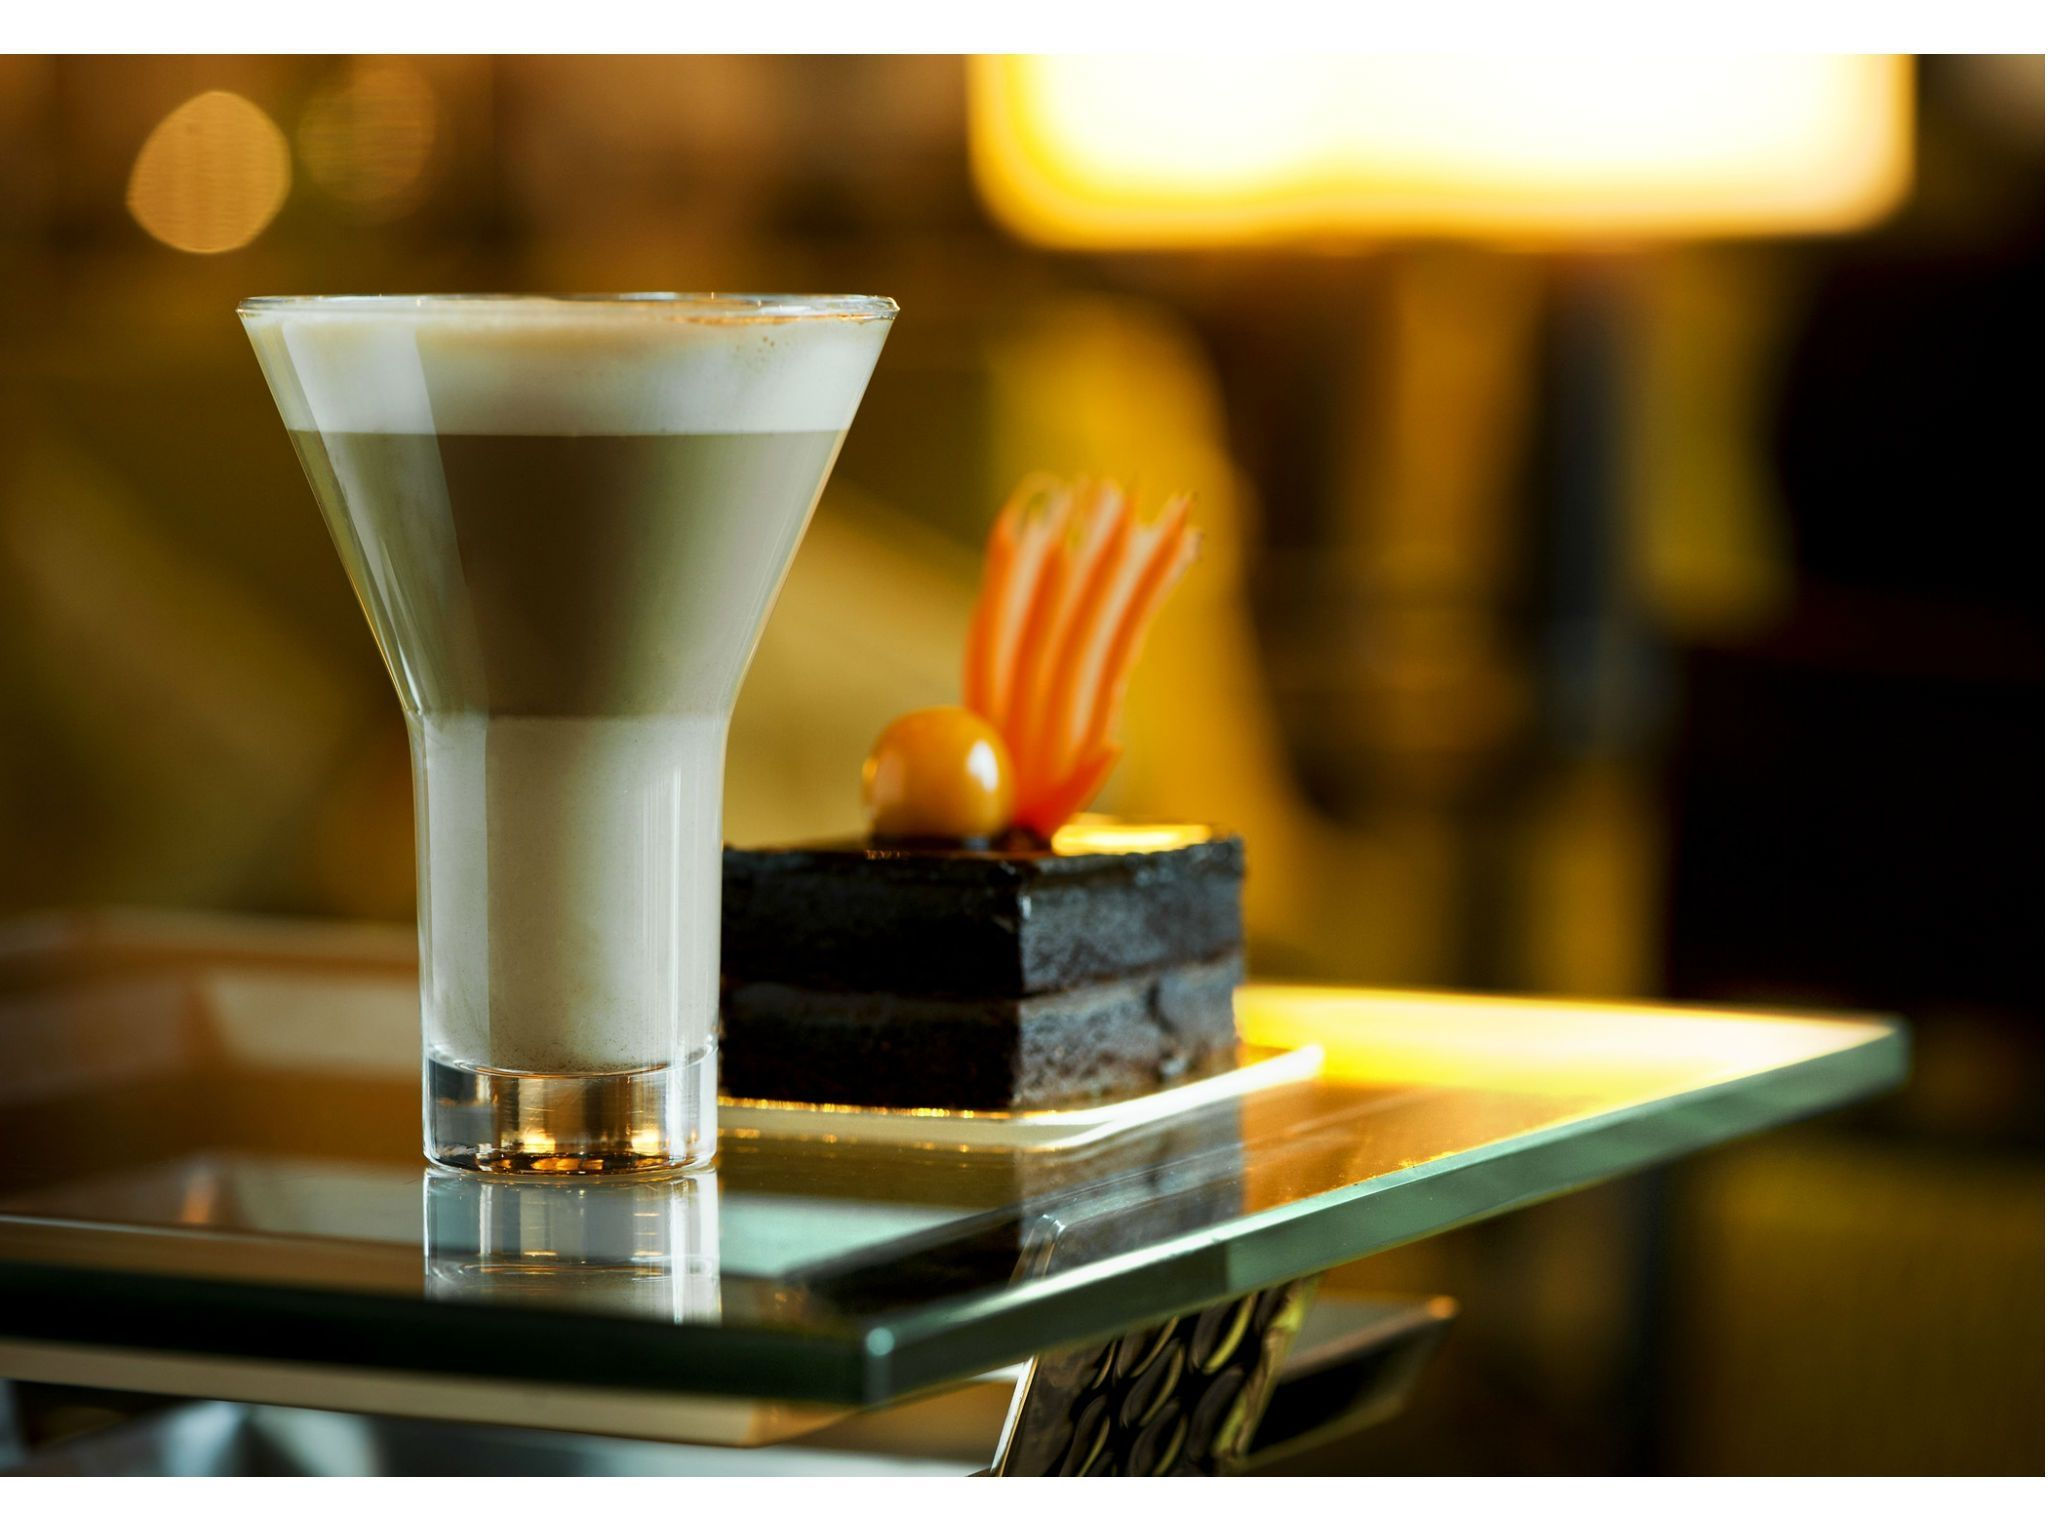 Sheraton Ufa Hotel - Coffee and dessert at Link Cafe